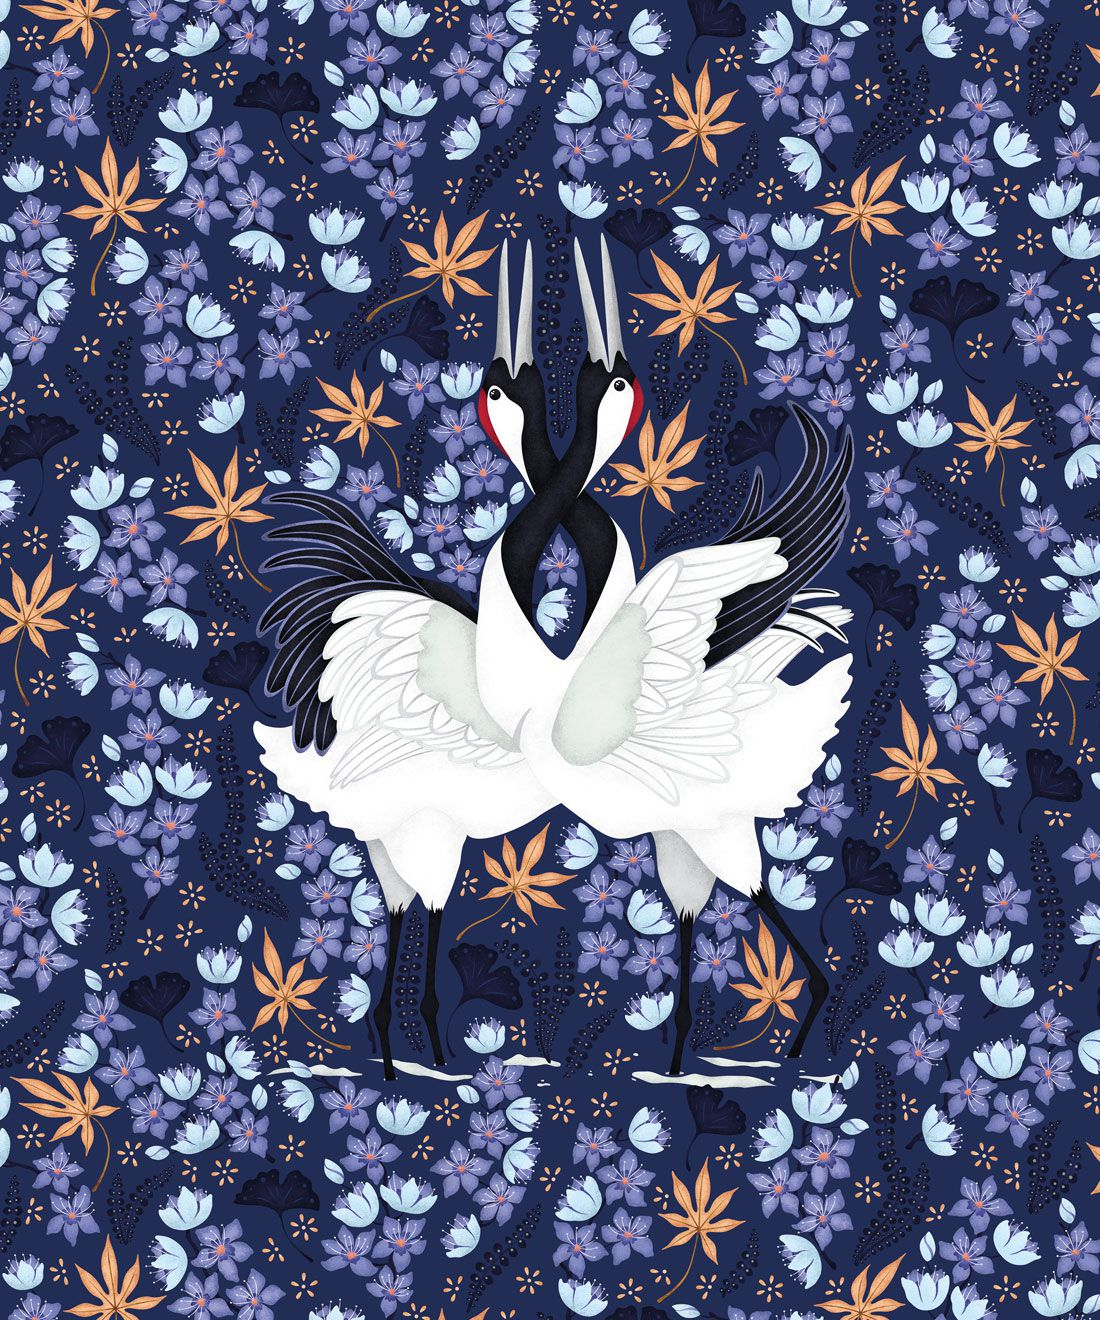 Japanese Cranes Wallpaper • Bird Wallpaper • Blue Wallpaper